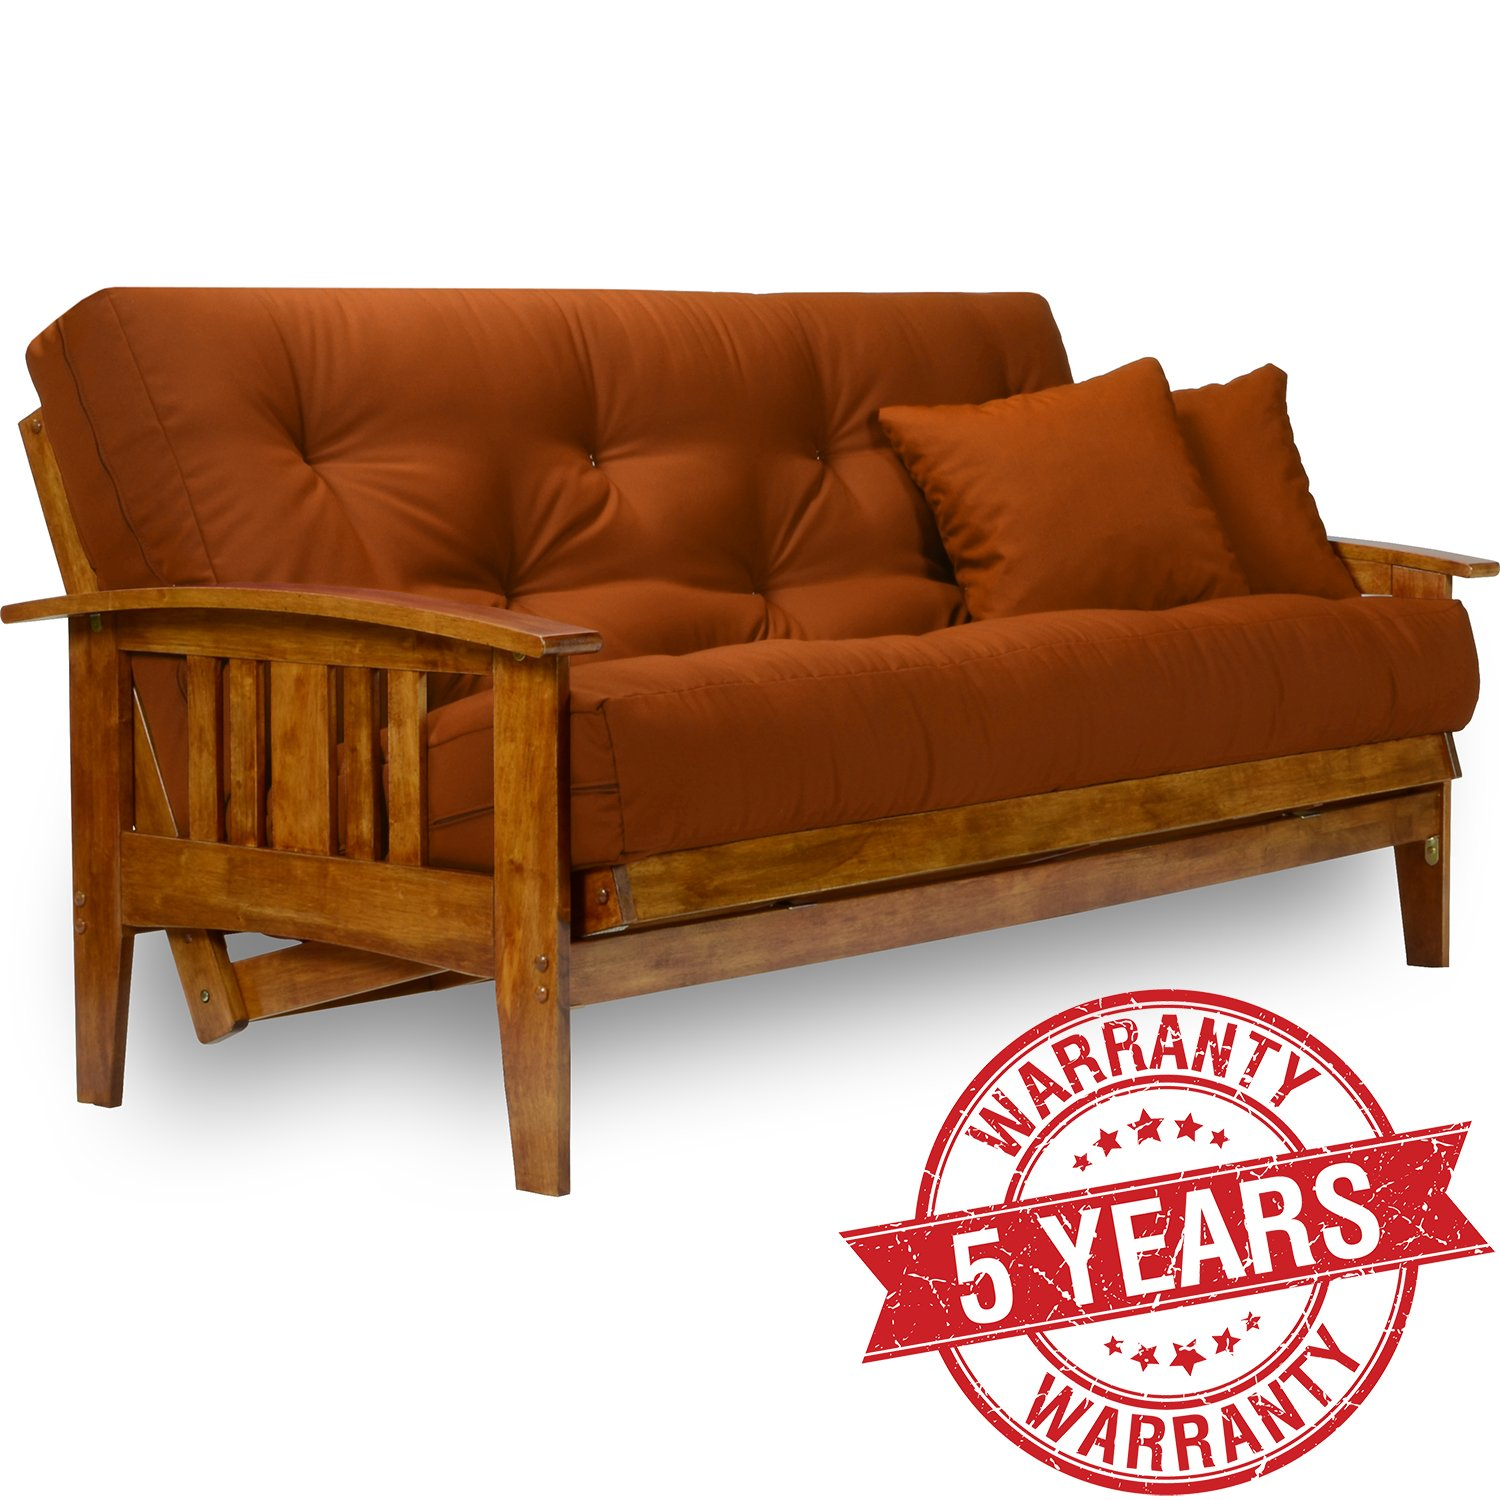 Medium image of westfield wood futon frame   full size